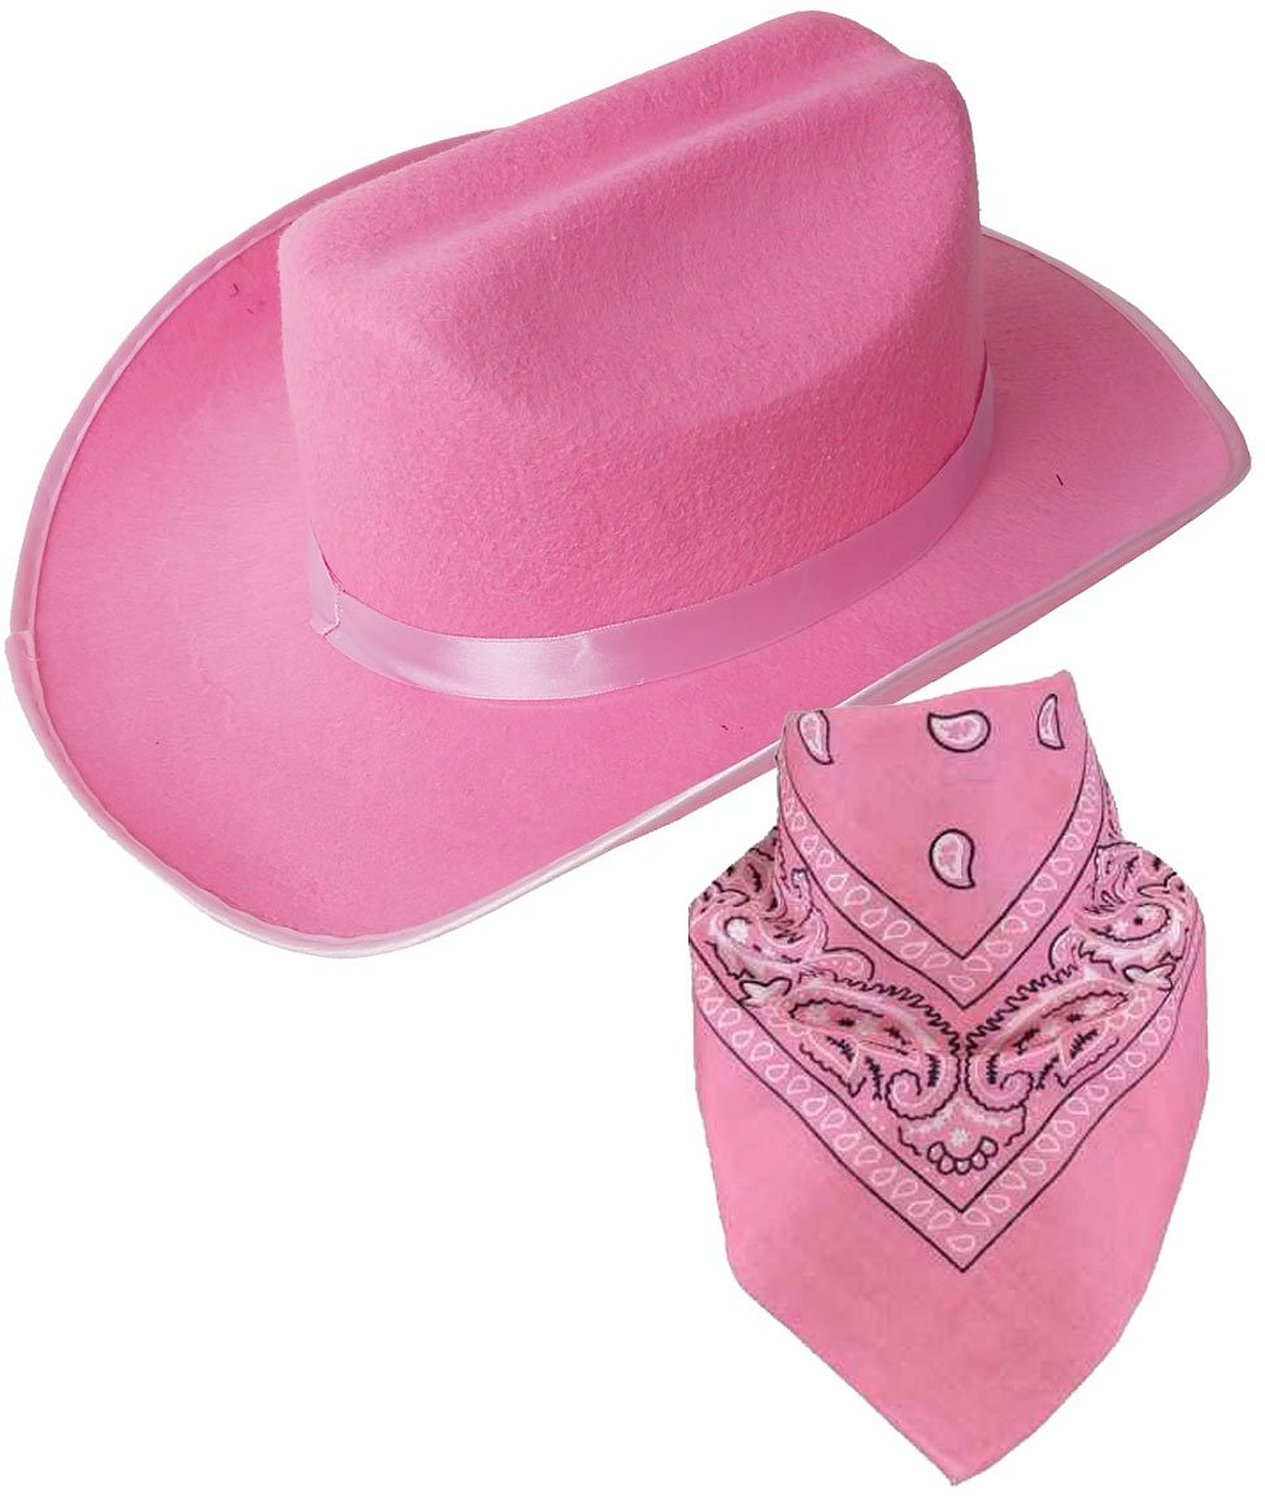 d48be692e9136 This is a Child Cowboy Hat and Bandana it is a Great for dress up and role  play. Hat is 100% Polyester Felt and Paisley Bandanna is 100% Cotton.